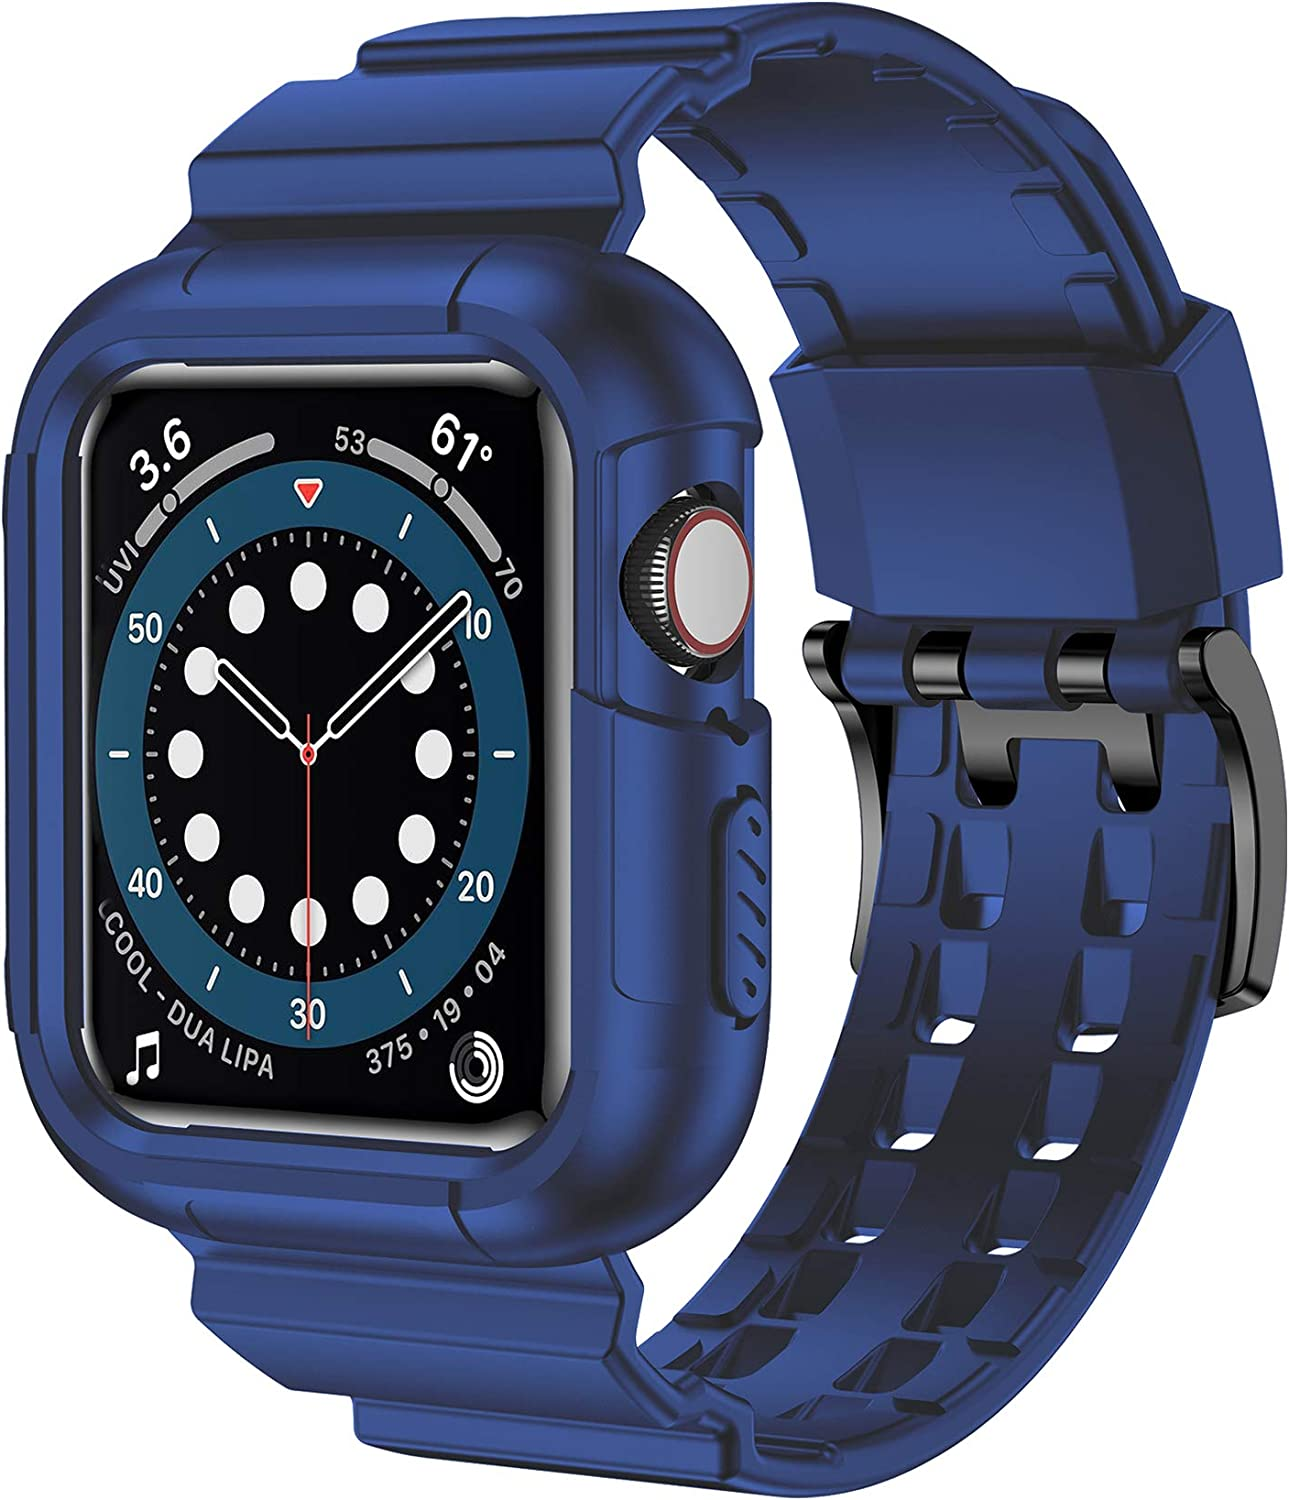 iiteeology Compatible with Apple Watch Band 44mm 42mm Case, Rugged Protective iWatch Case with Sport Bands for Apple Watch SE Series 6/5/4/3/2/1, Blue